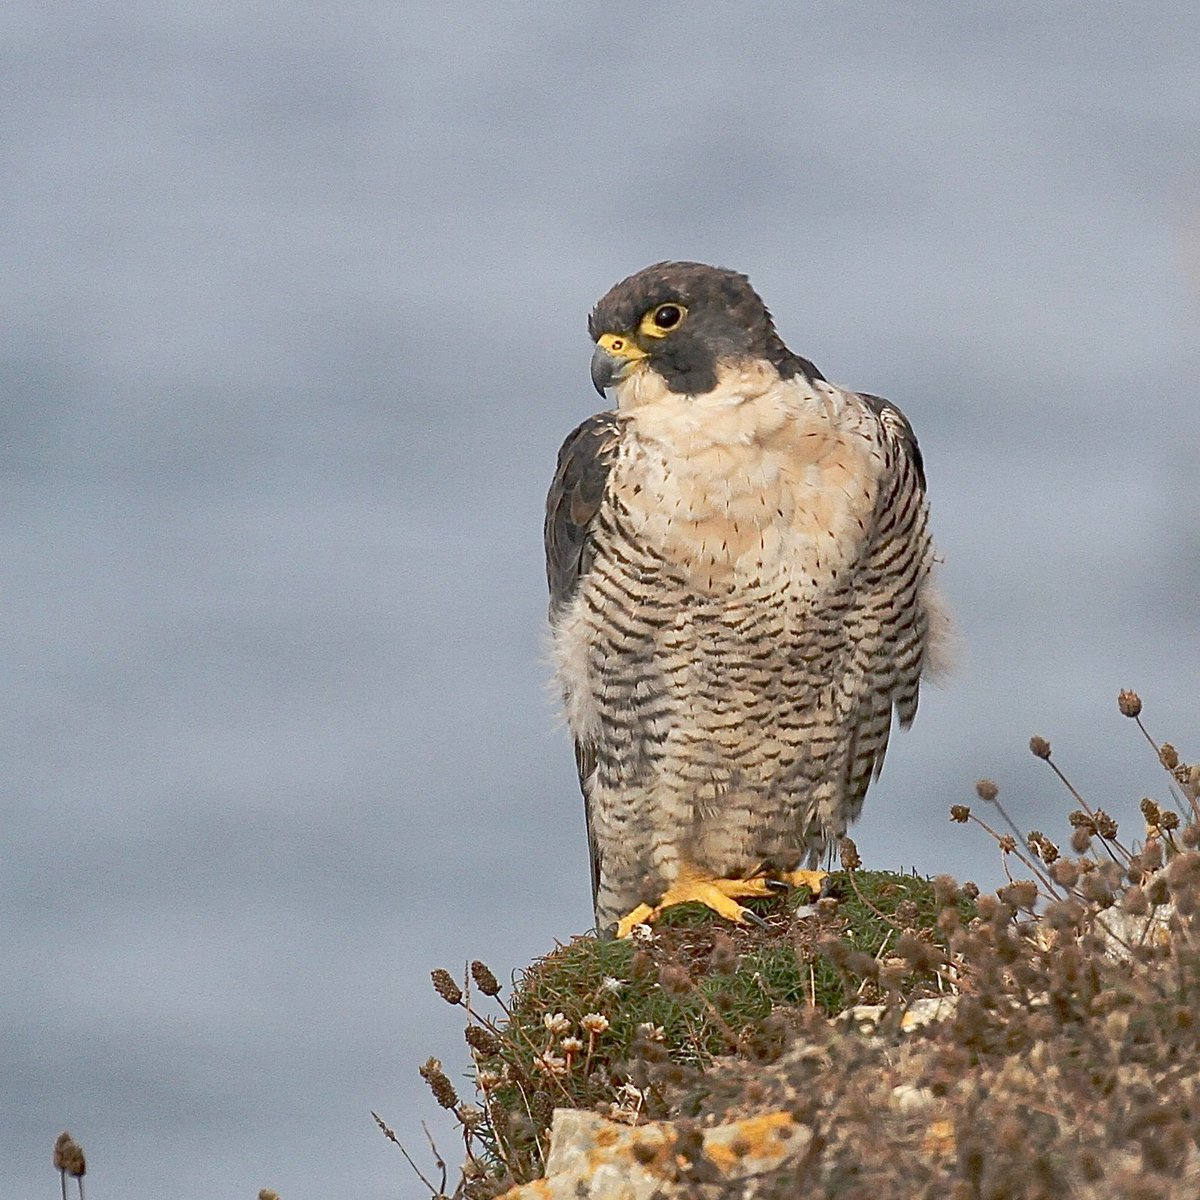 Early morning Peregrine on the Purbeck cliffs - always a pleasure to see #dorsetwt<br>http://pic.twitter.com/n98zD13UTs